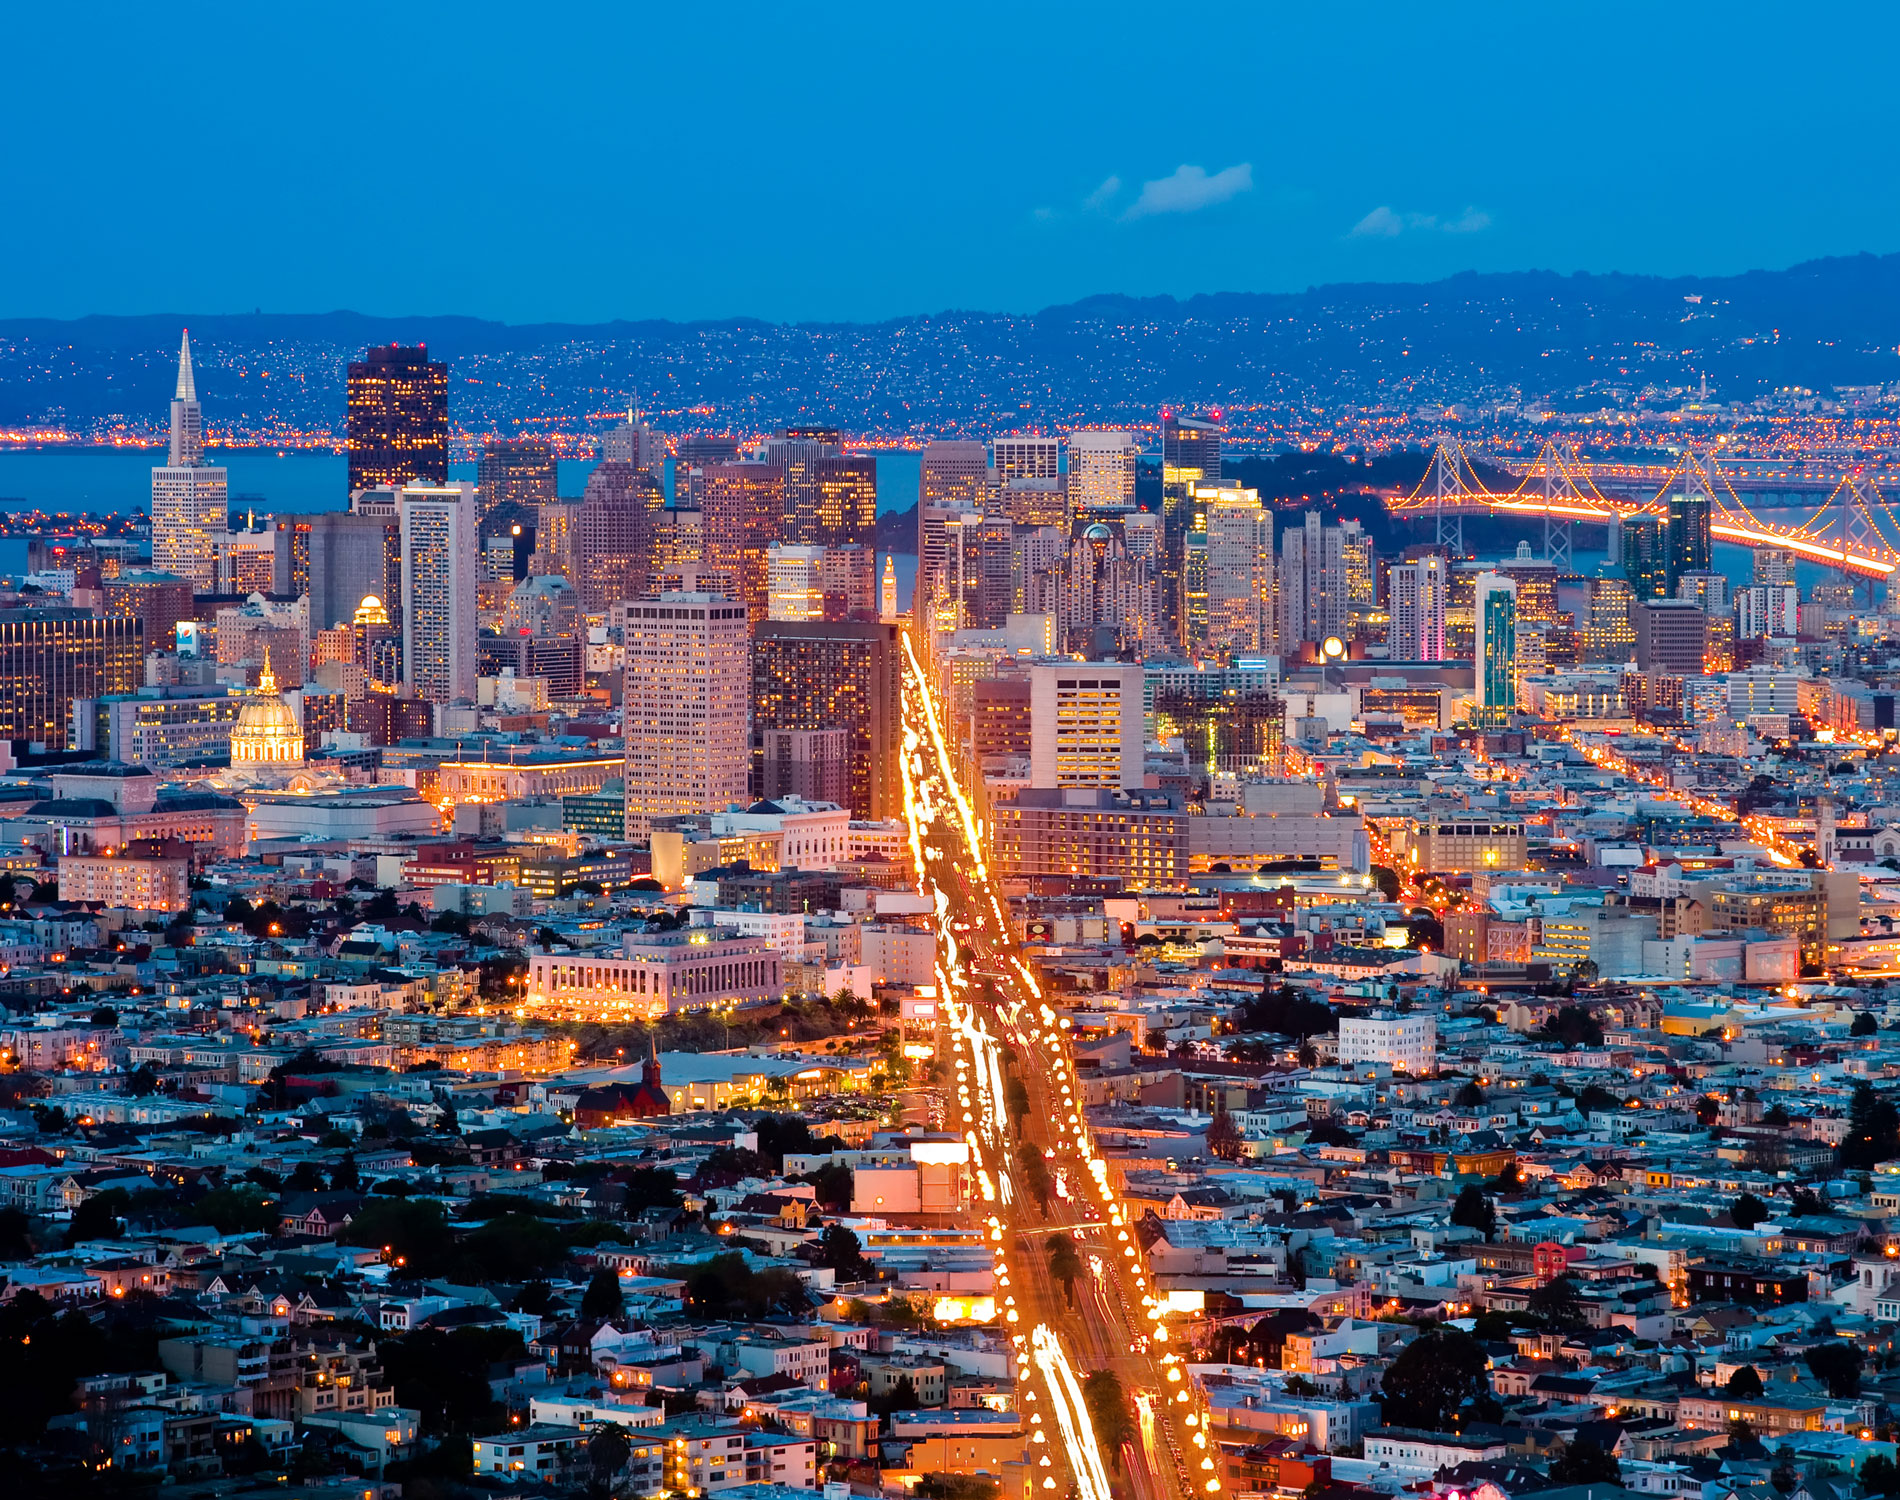 1 293 Free images of San Francisco